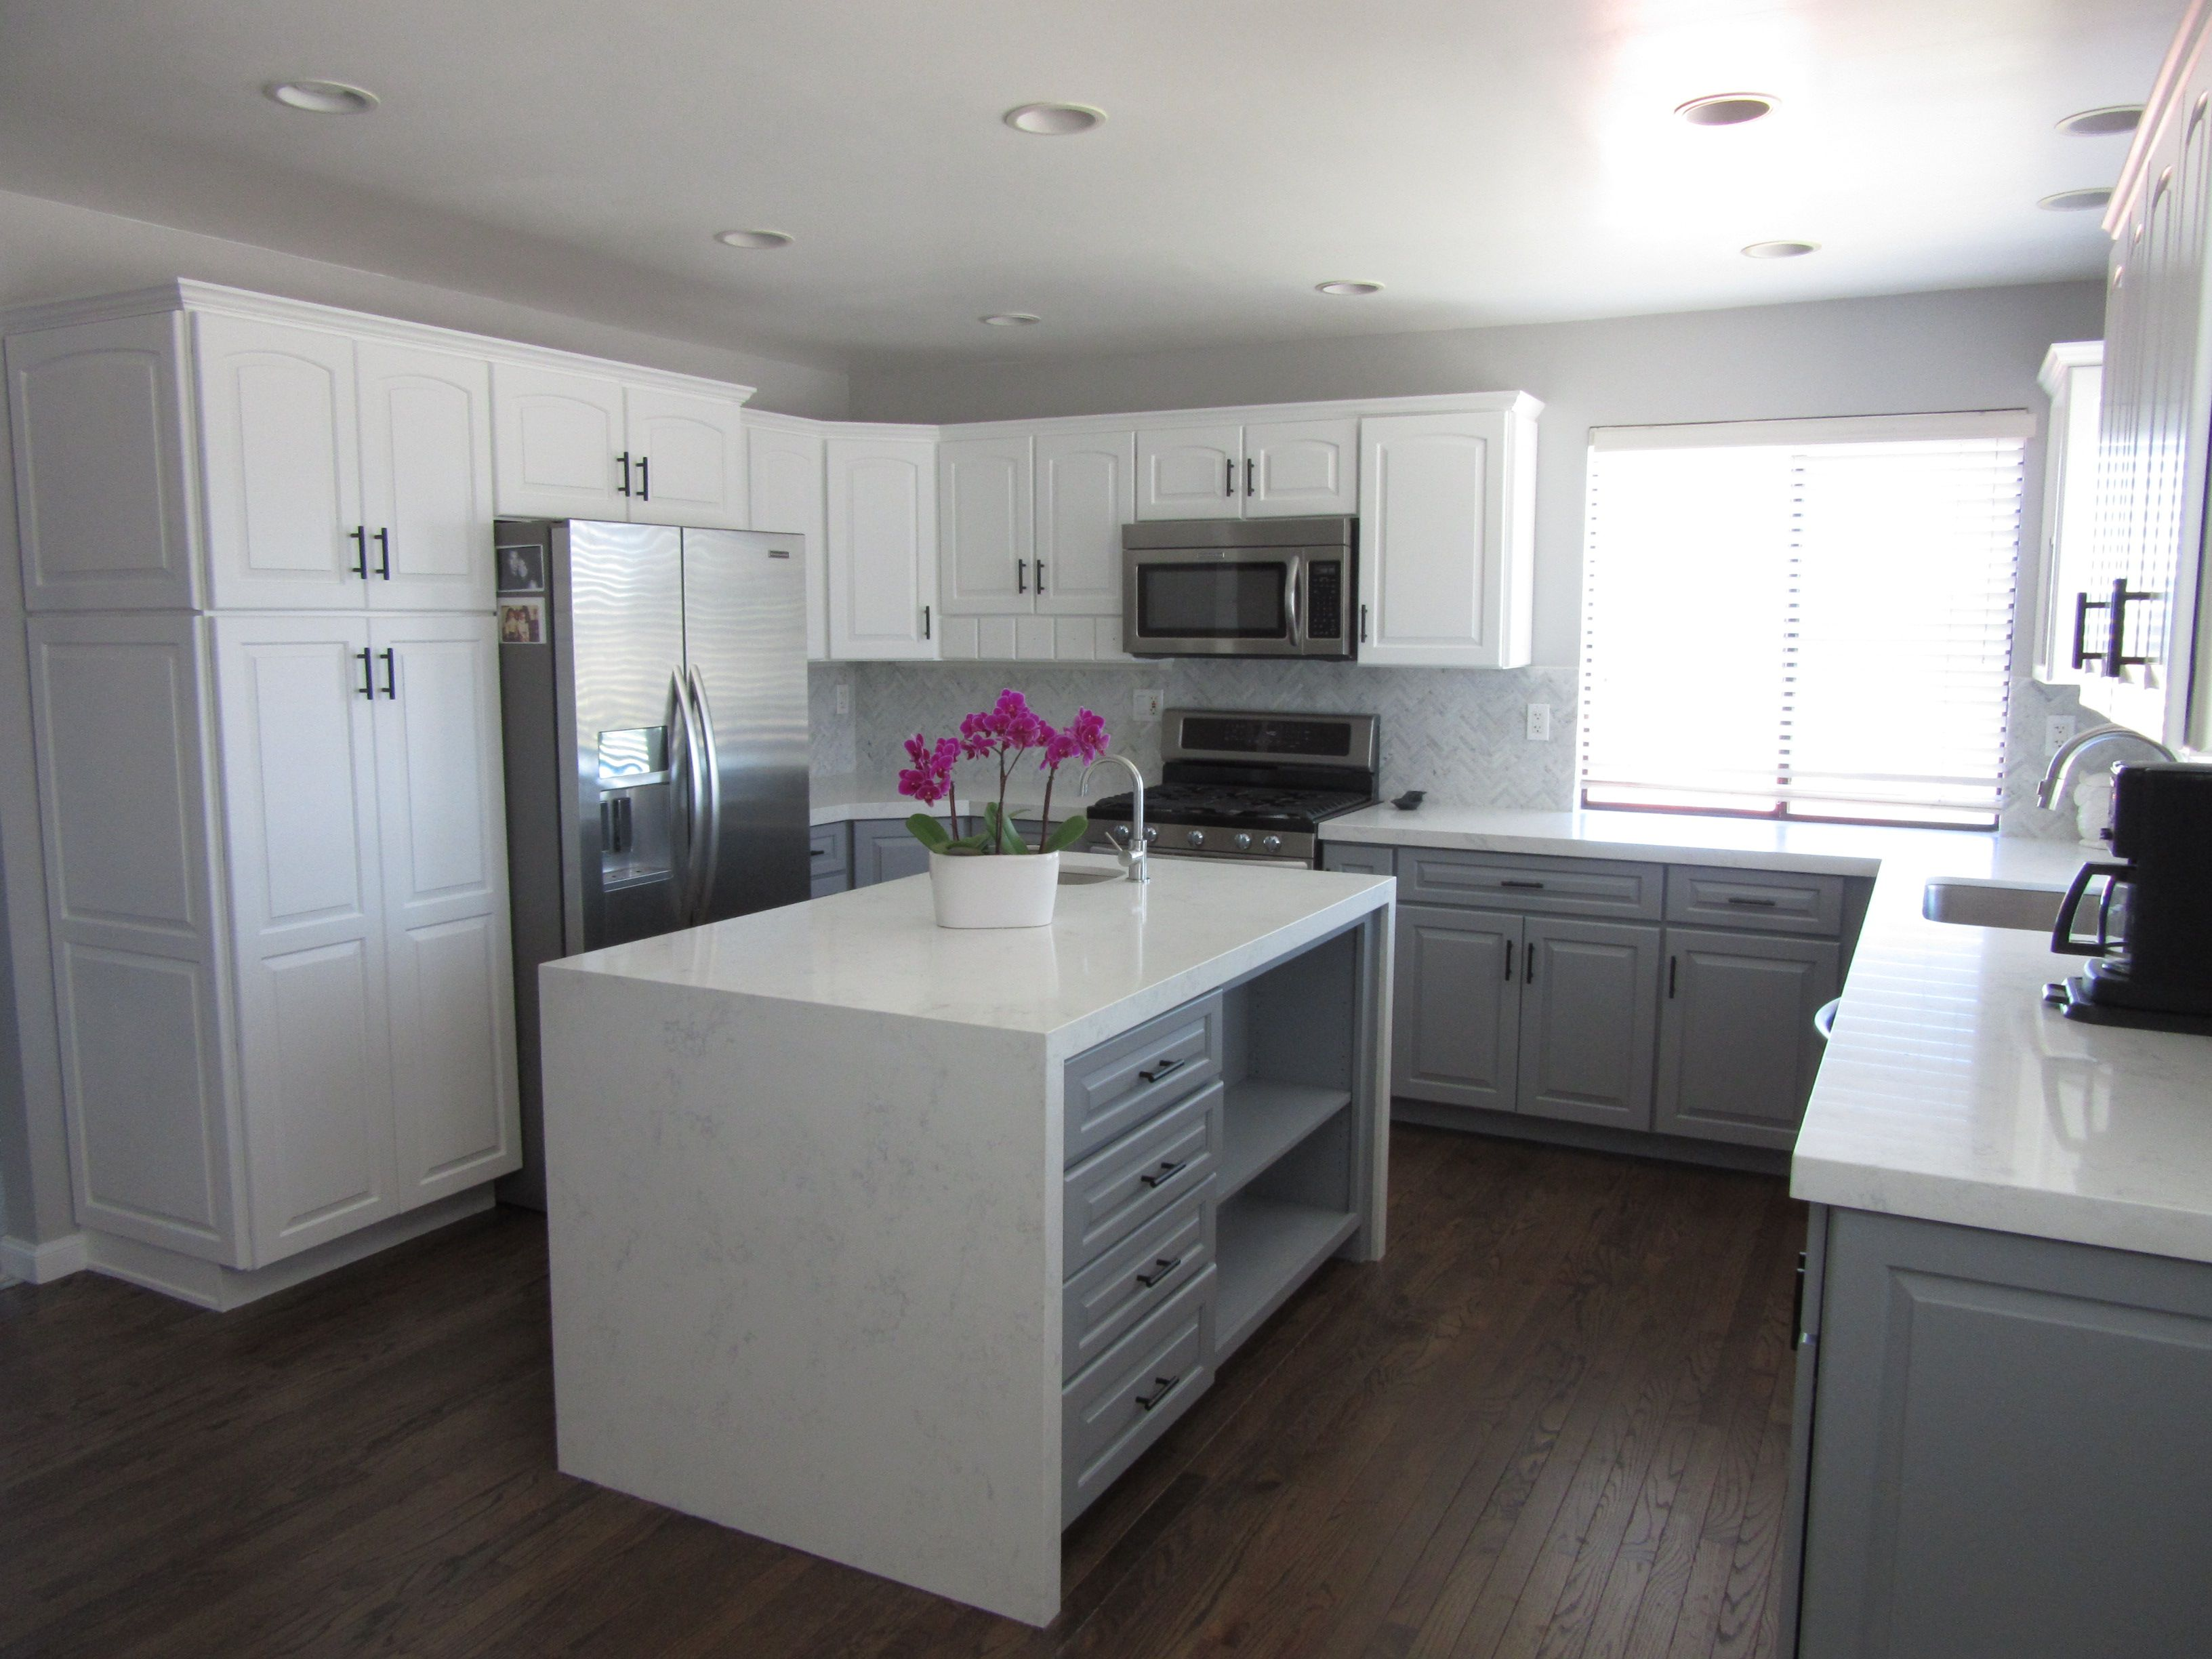 Our kitchen remodel with waterfall island and